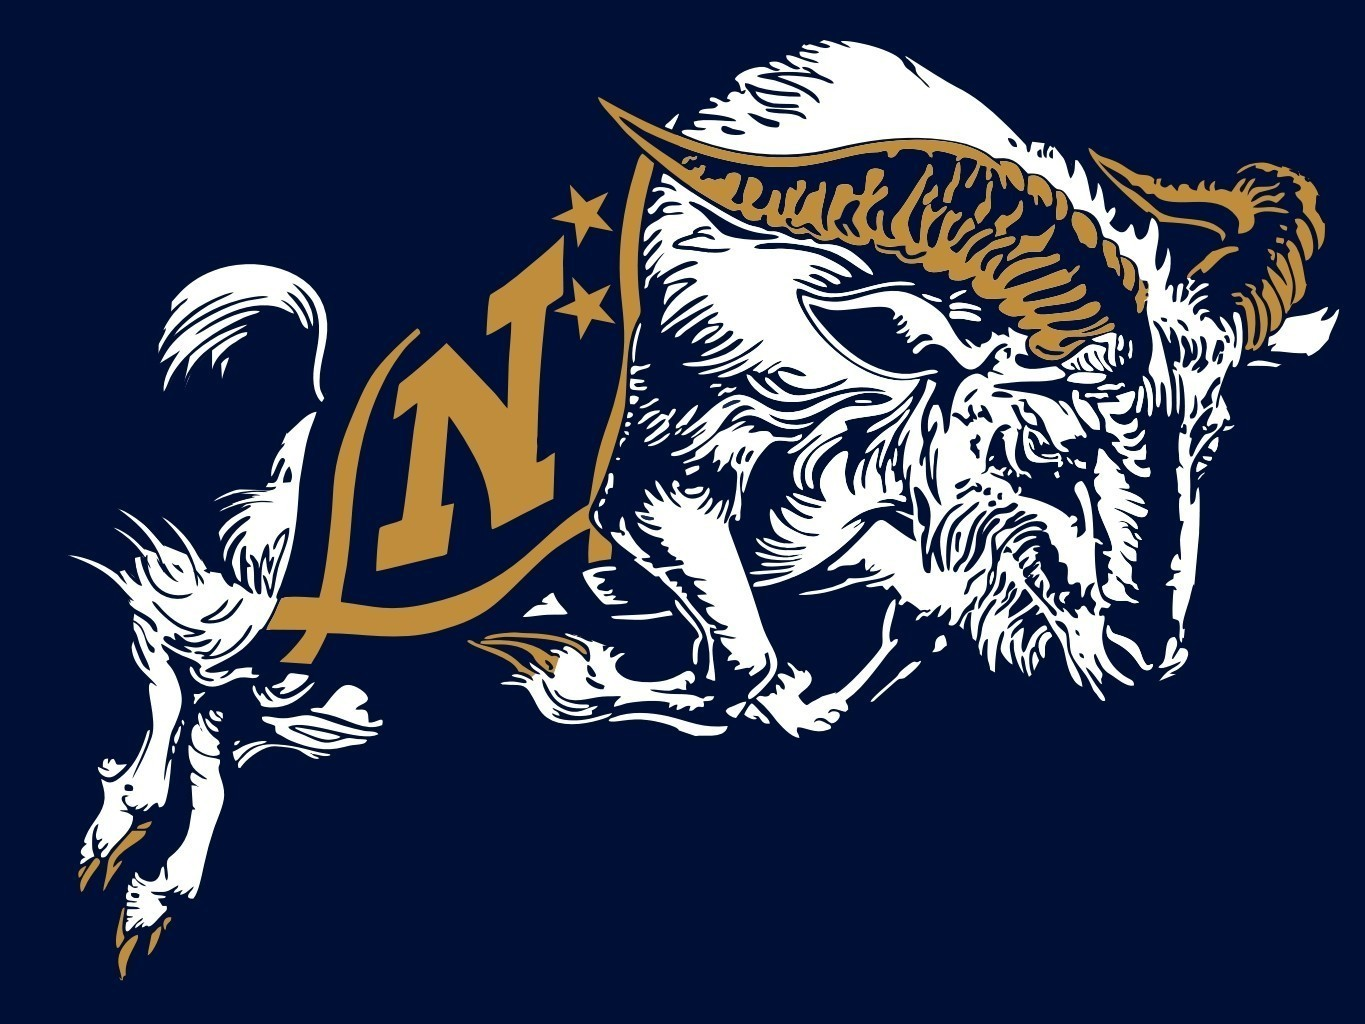 a840283c8 College Roundup: Taylor Ruden hired as assistant coach for Navy women's  rowing - Capital Gazette